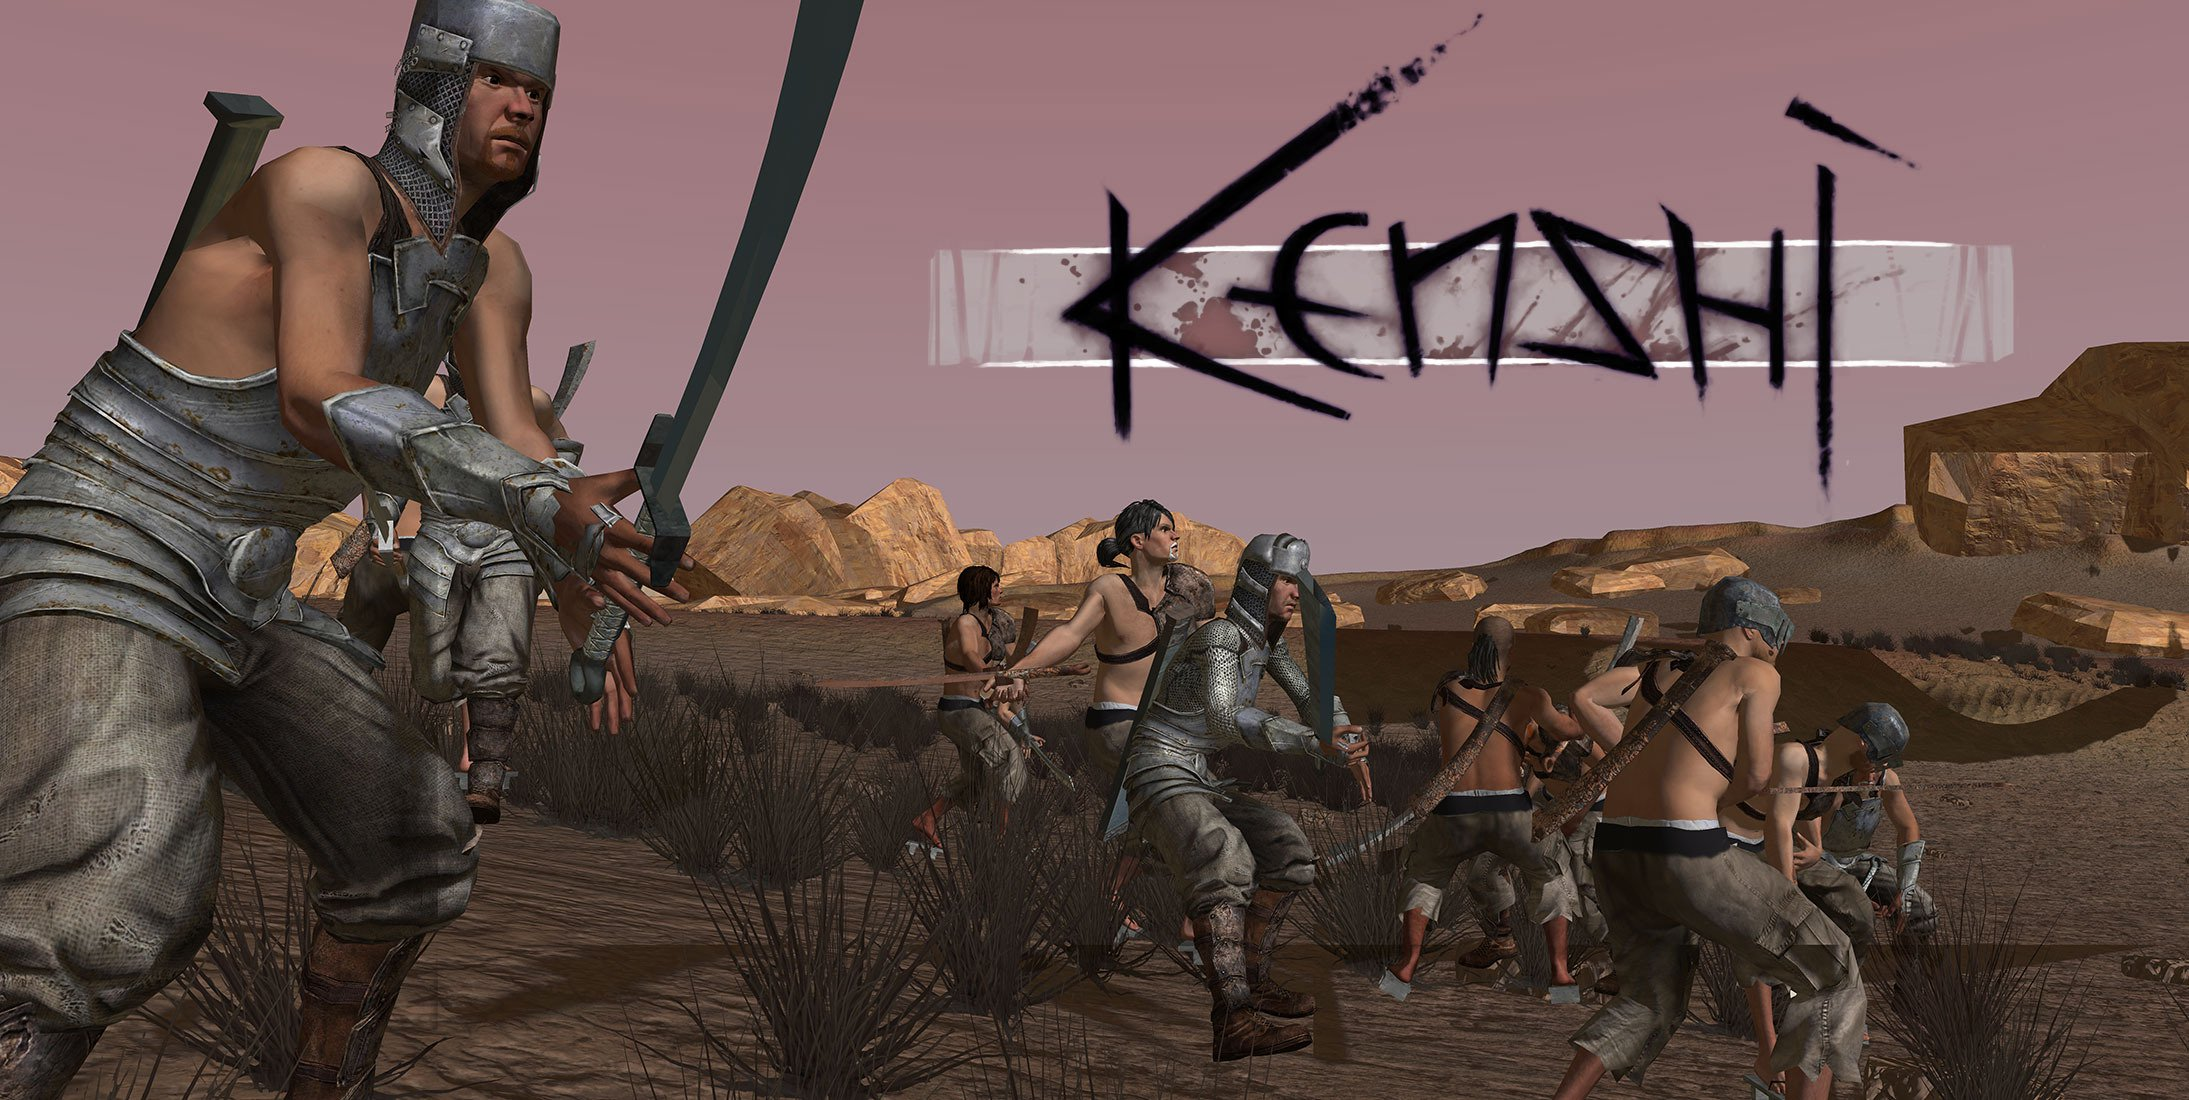 kenshi_full_battle_image.jpg